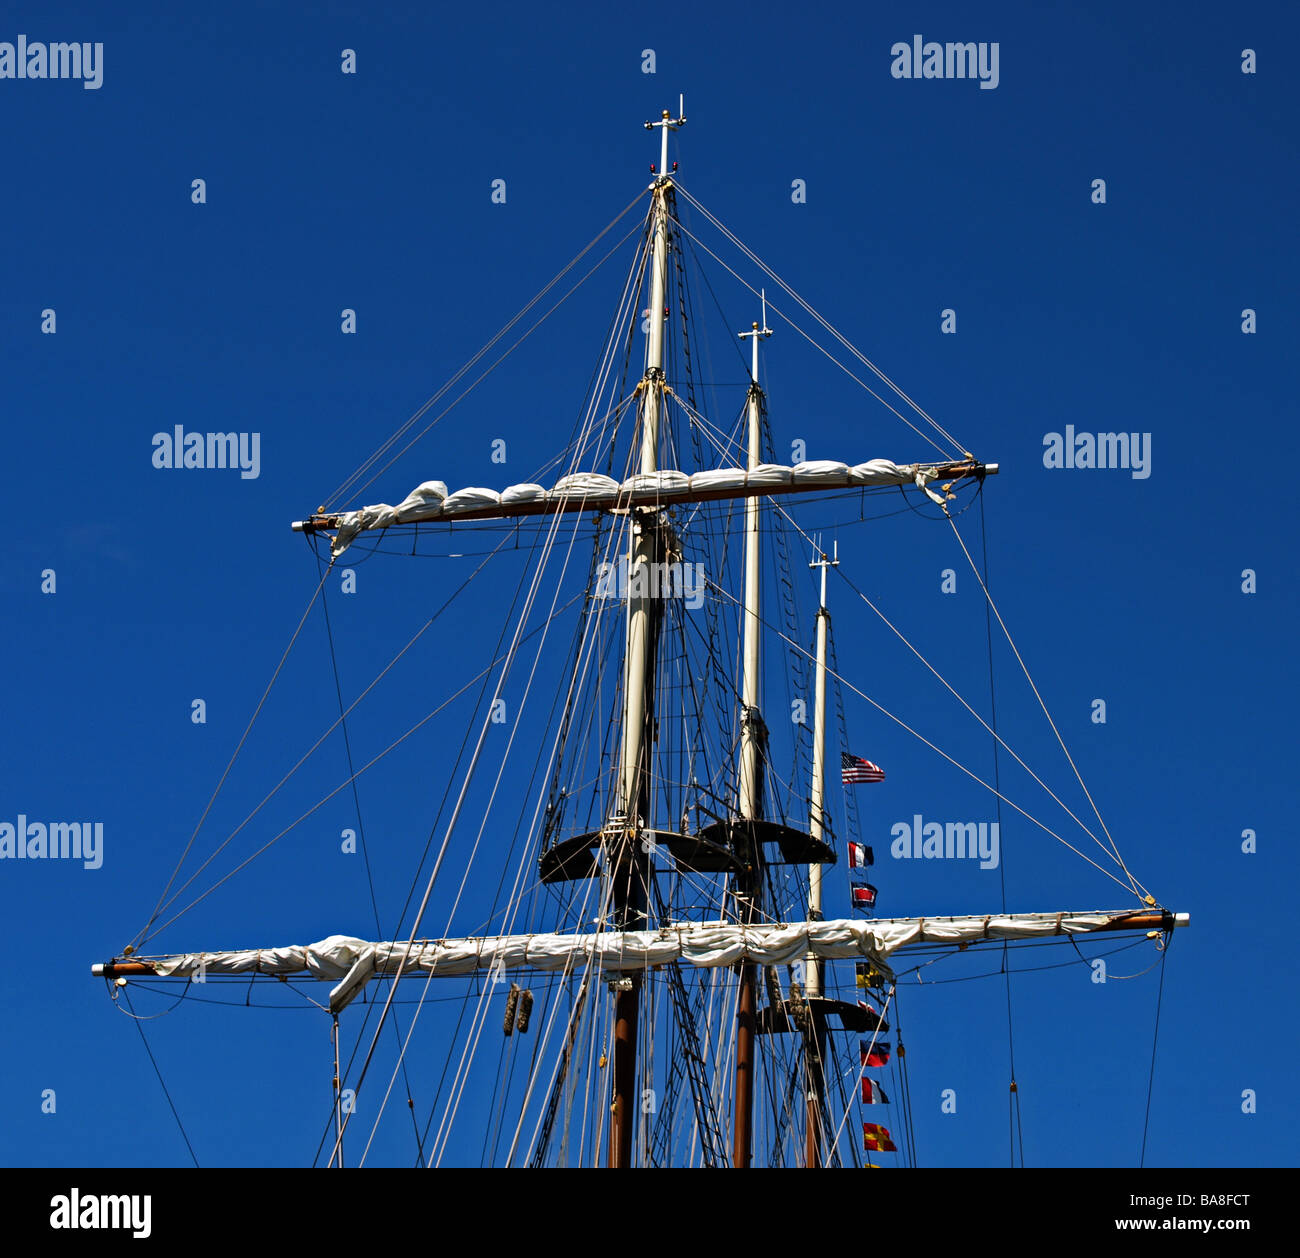 tall-ship tall-ships three masts with furled sails against blue sky with wires and pendants upper part of ship - Stock Image